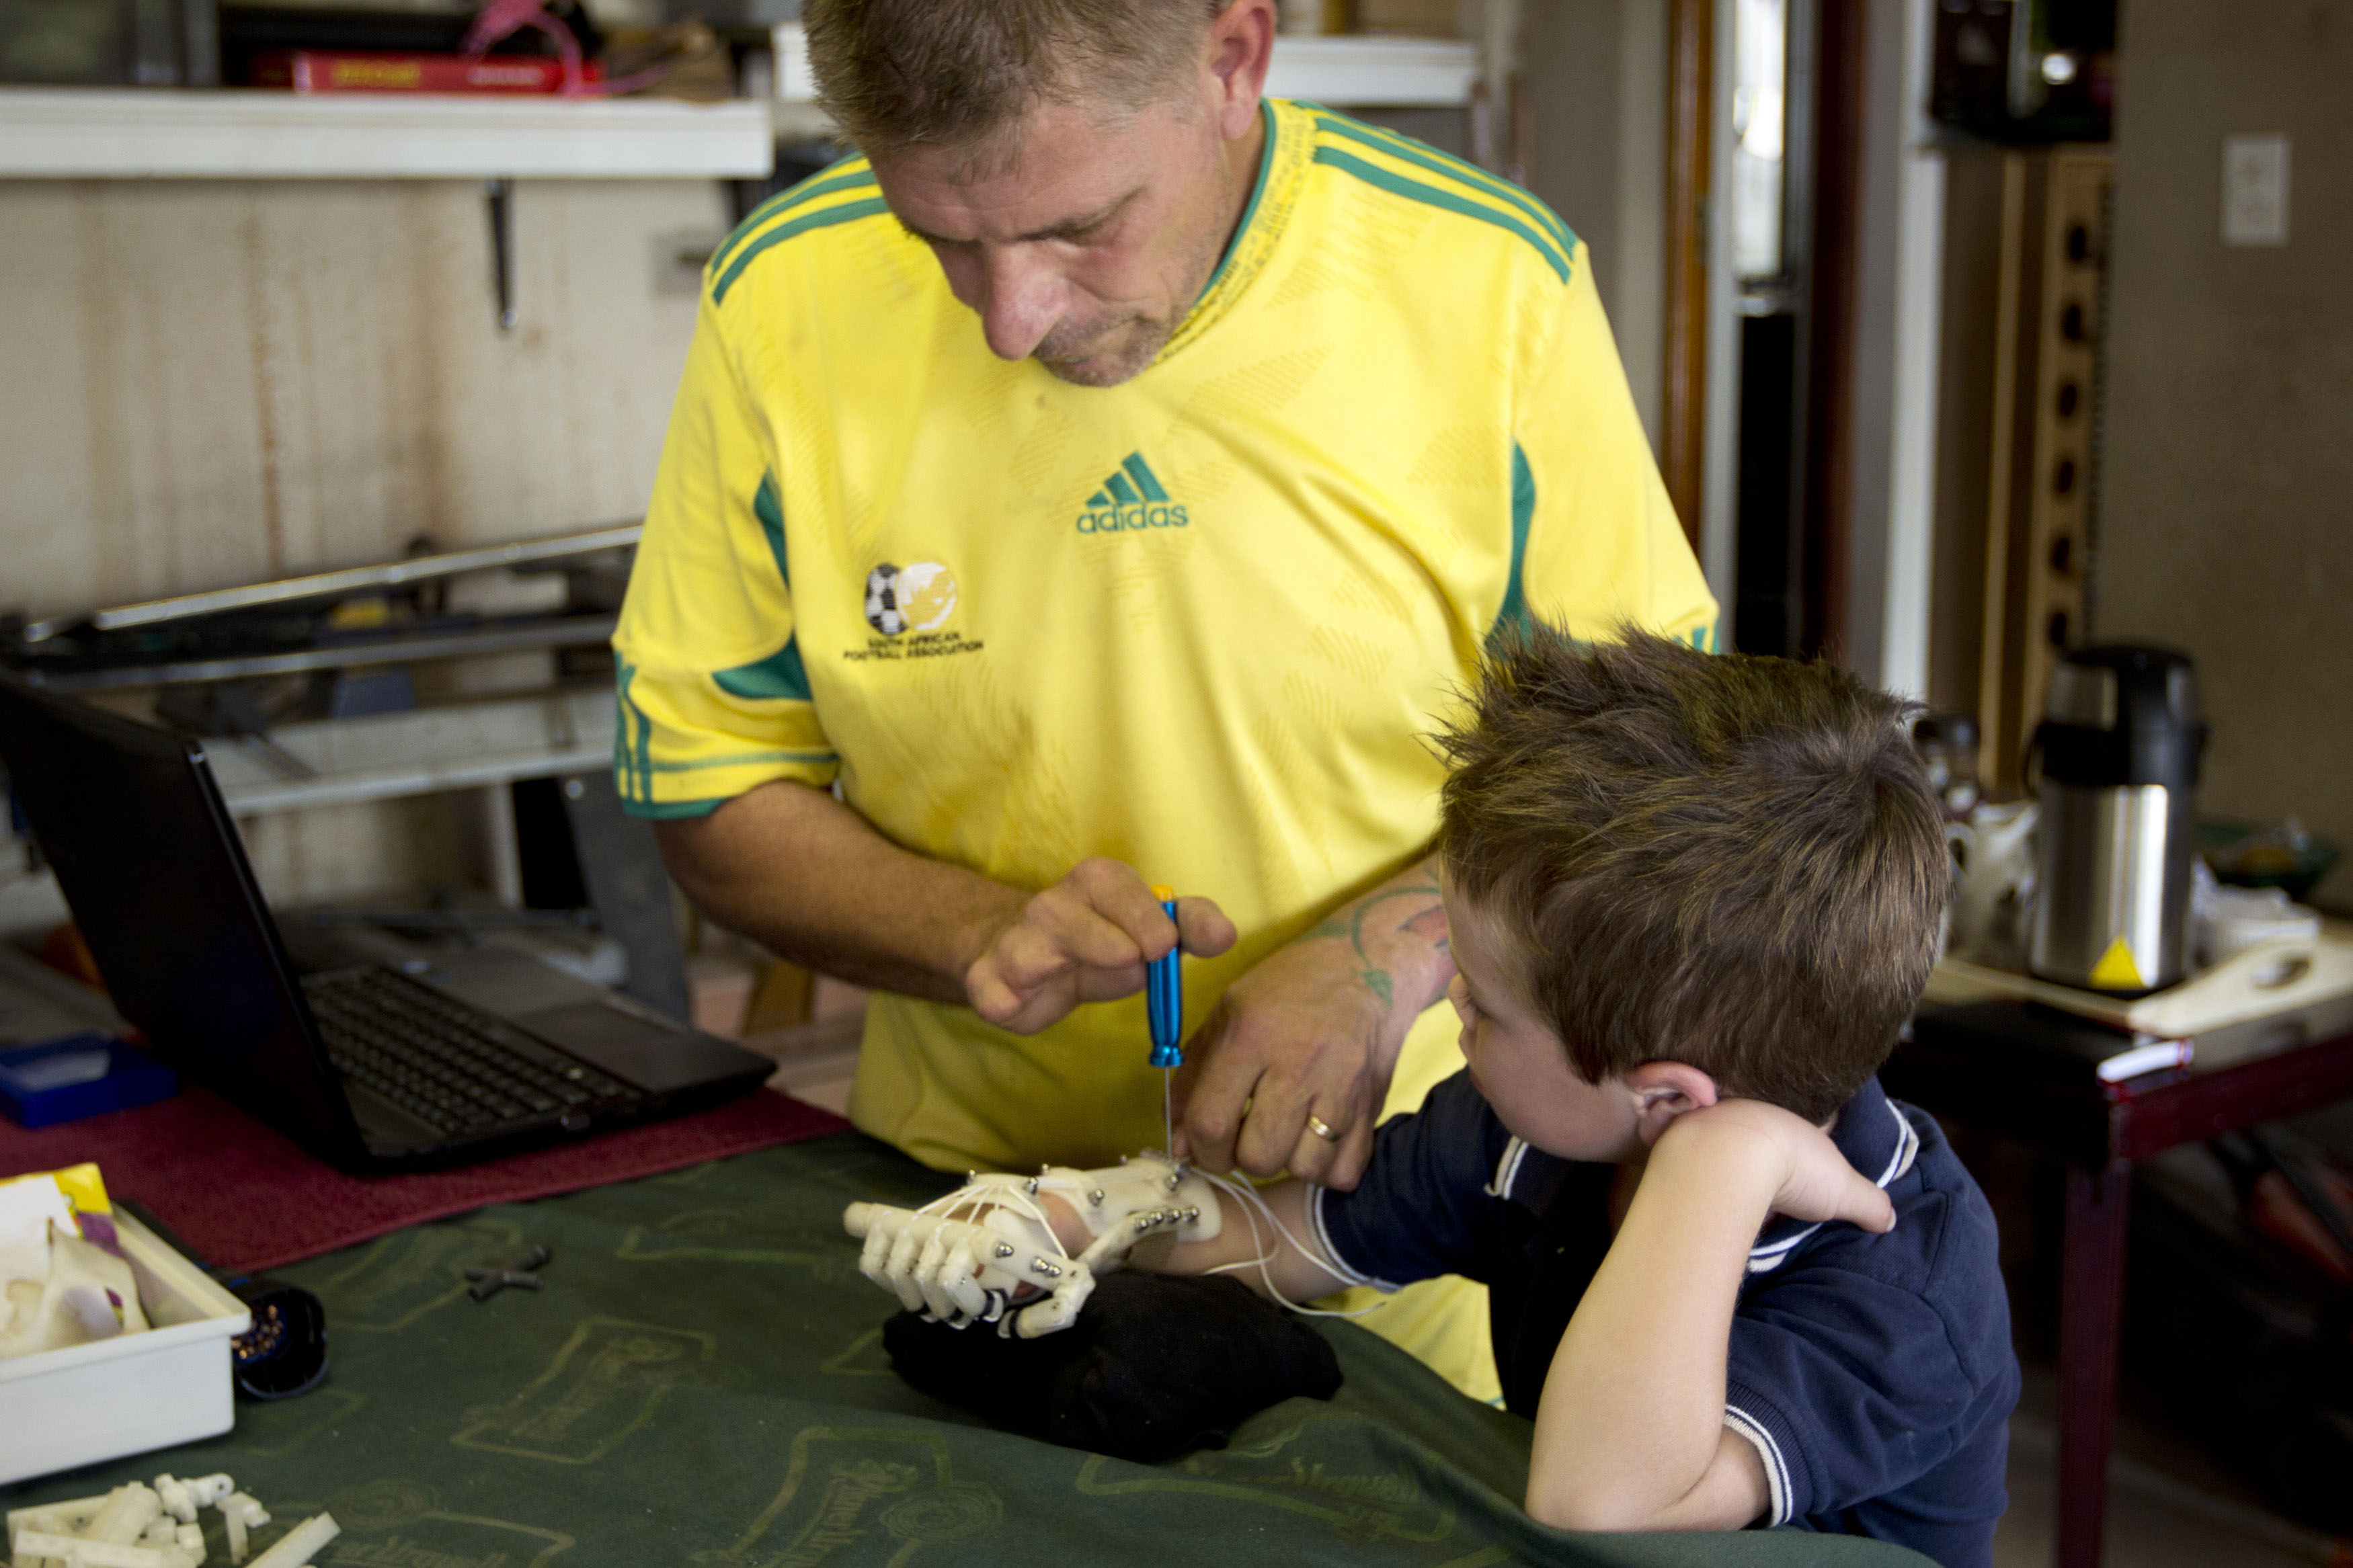 Richard Van As, a South African carpenter who lost a portion of his hand in an accident, assembles a Robohand and fits it to Liam Dippenaar. Liam was born without fingers on his right hand.